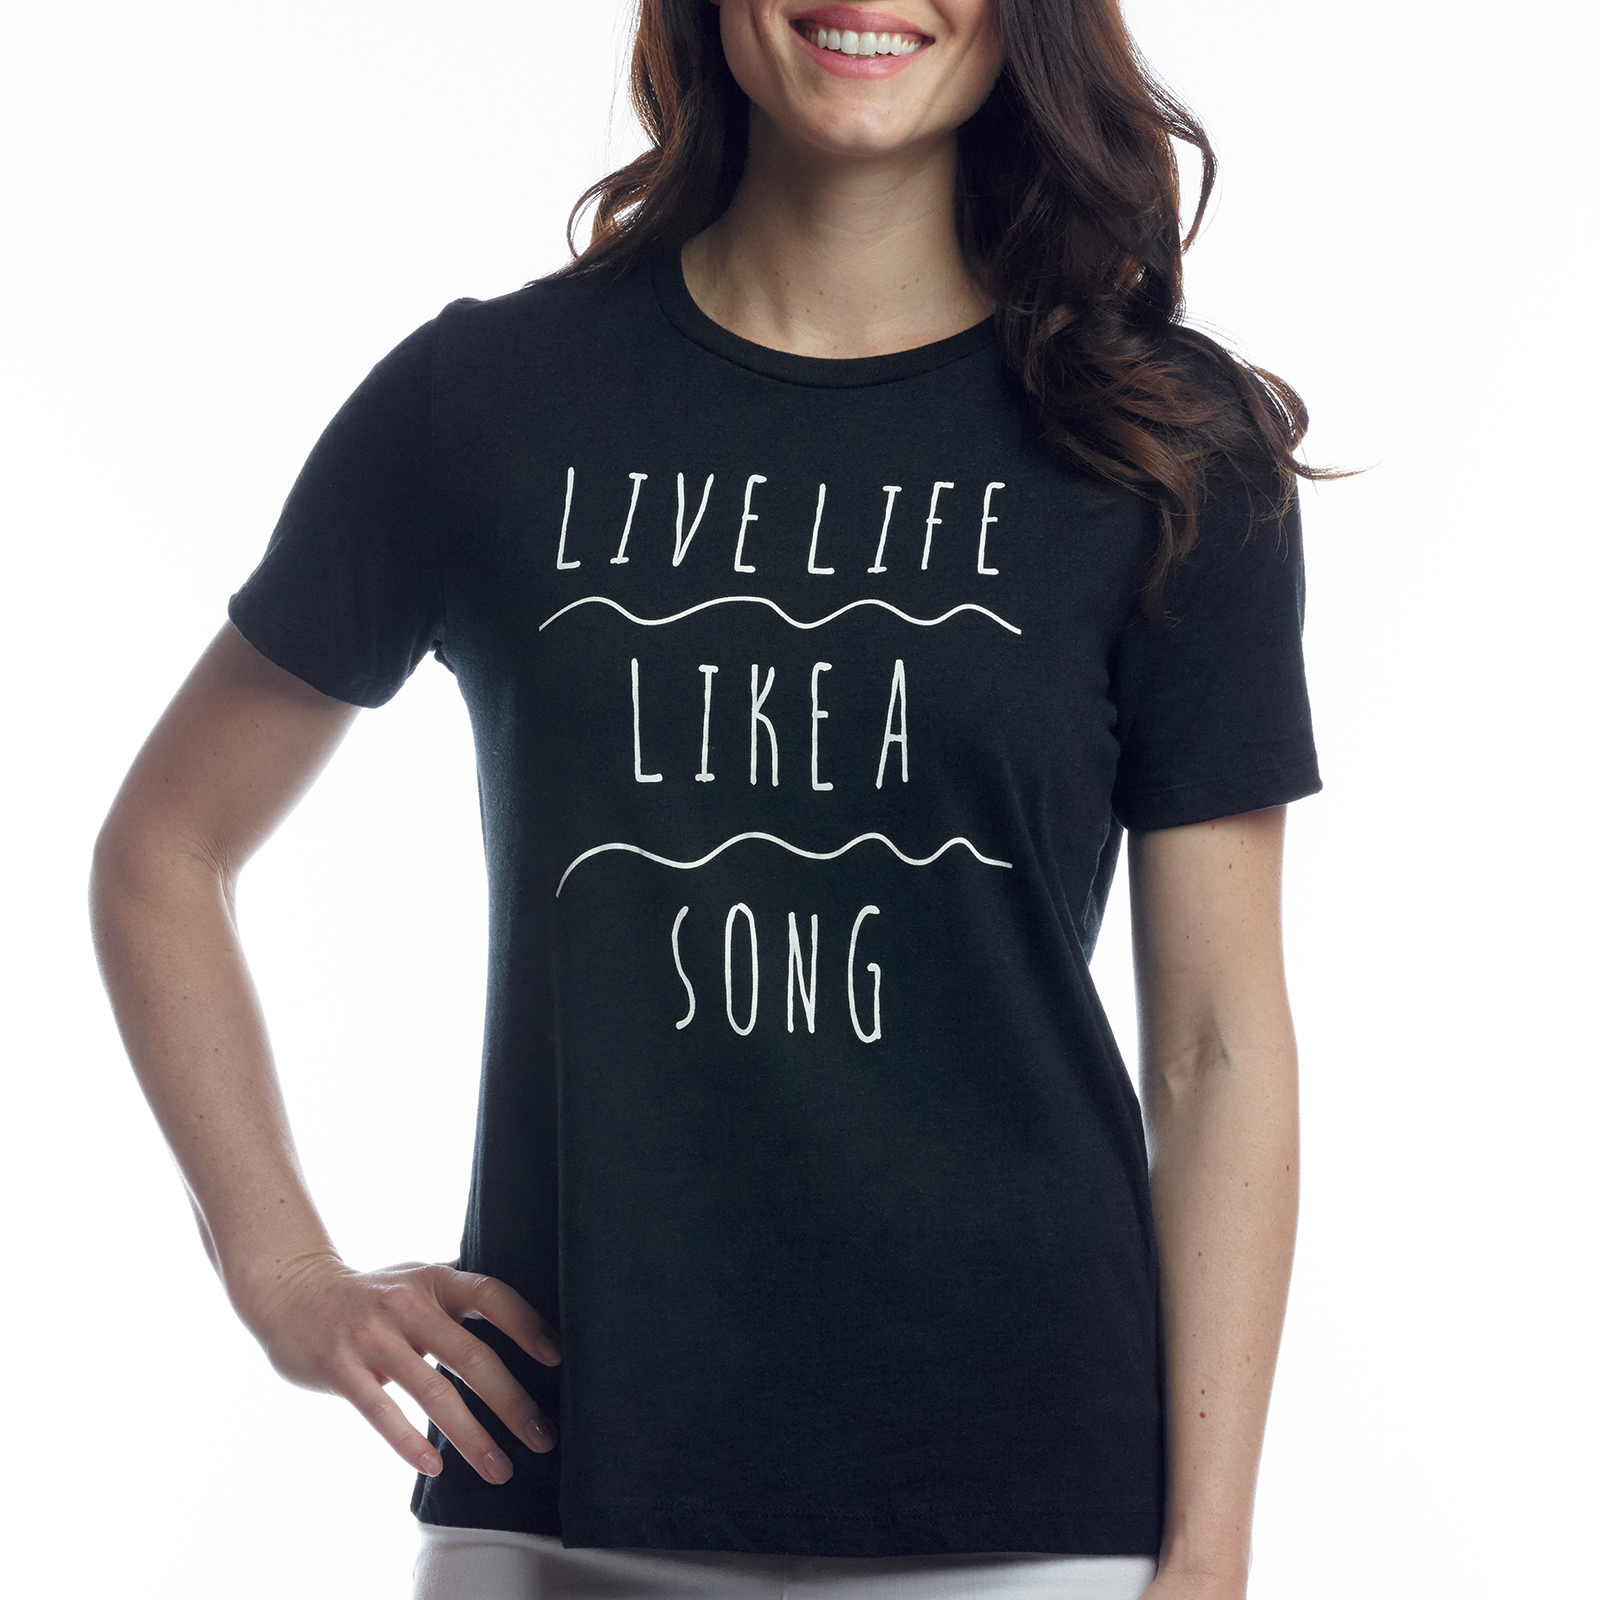 LIKE A SONG STATEMENT T-SHIRT